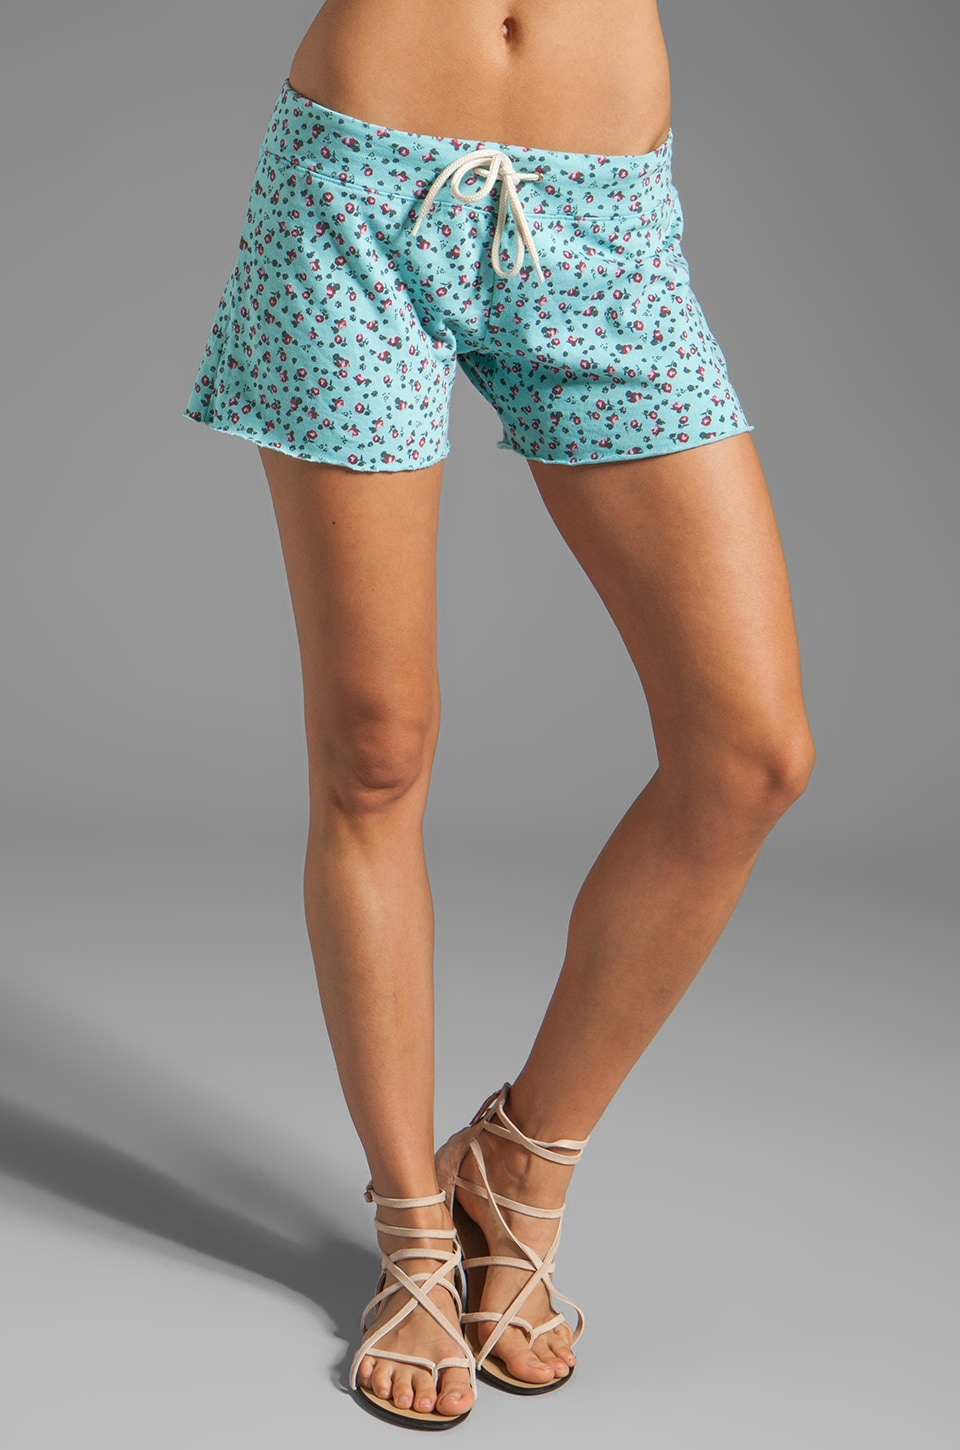 MONROW Ditsy Print Vintage Shorts in Spearmint